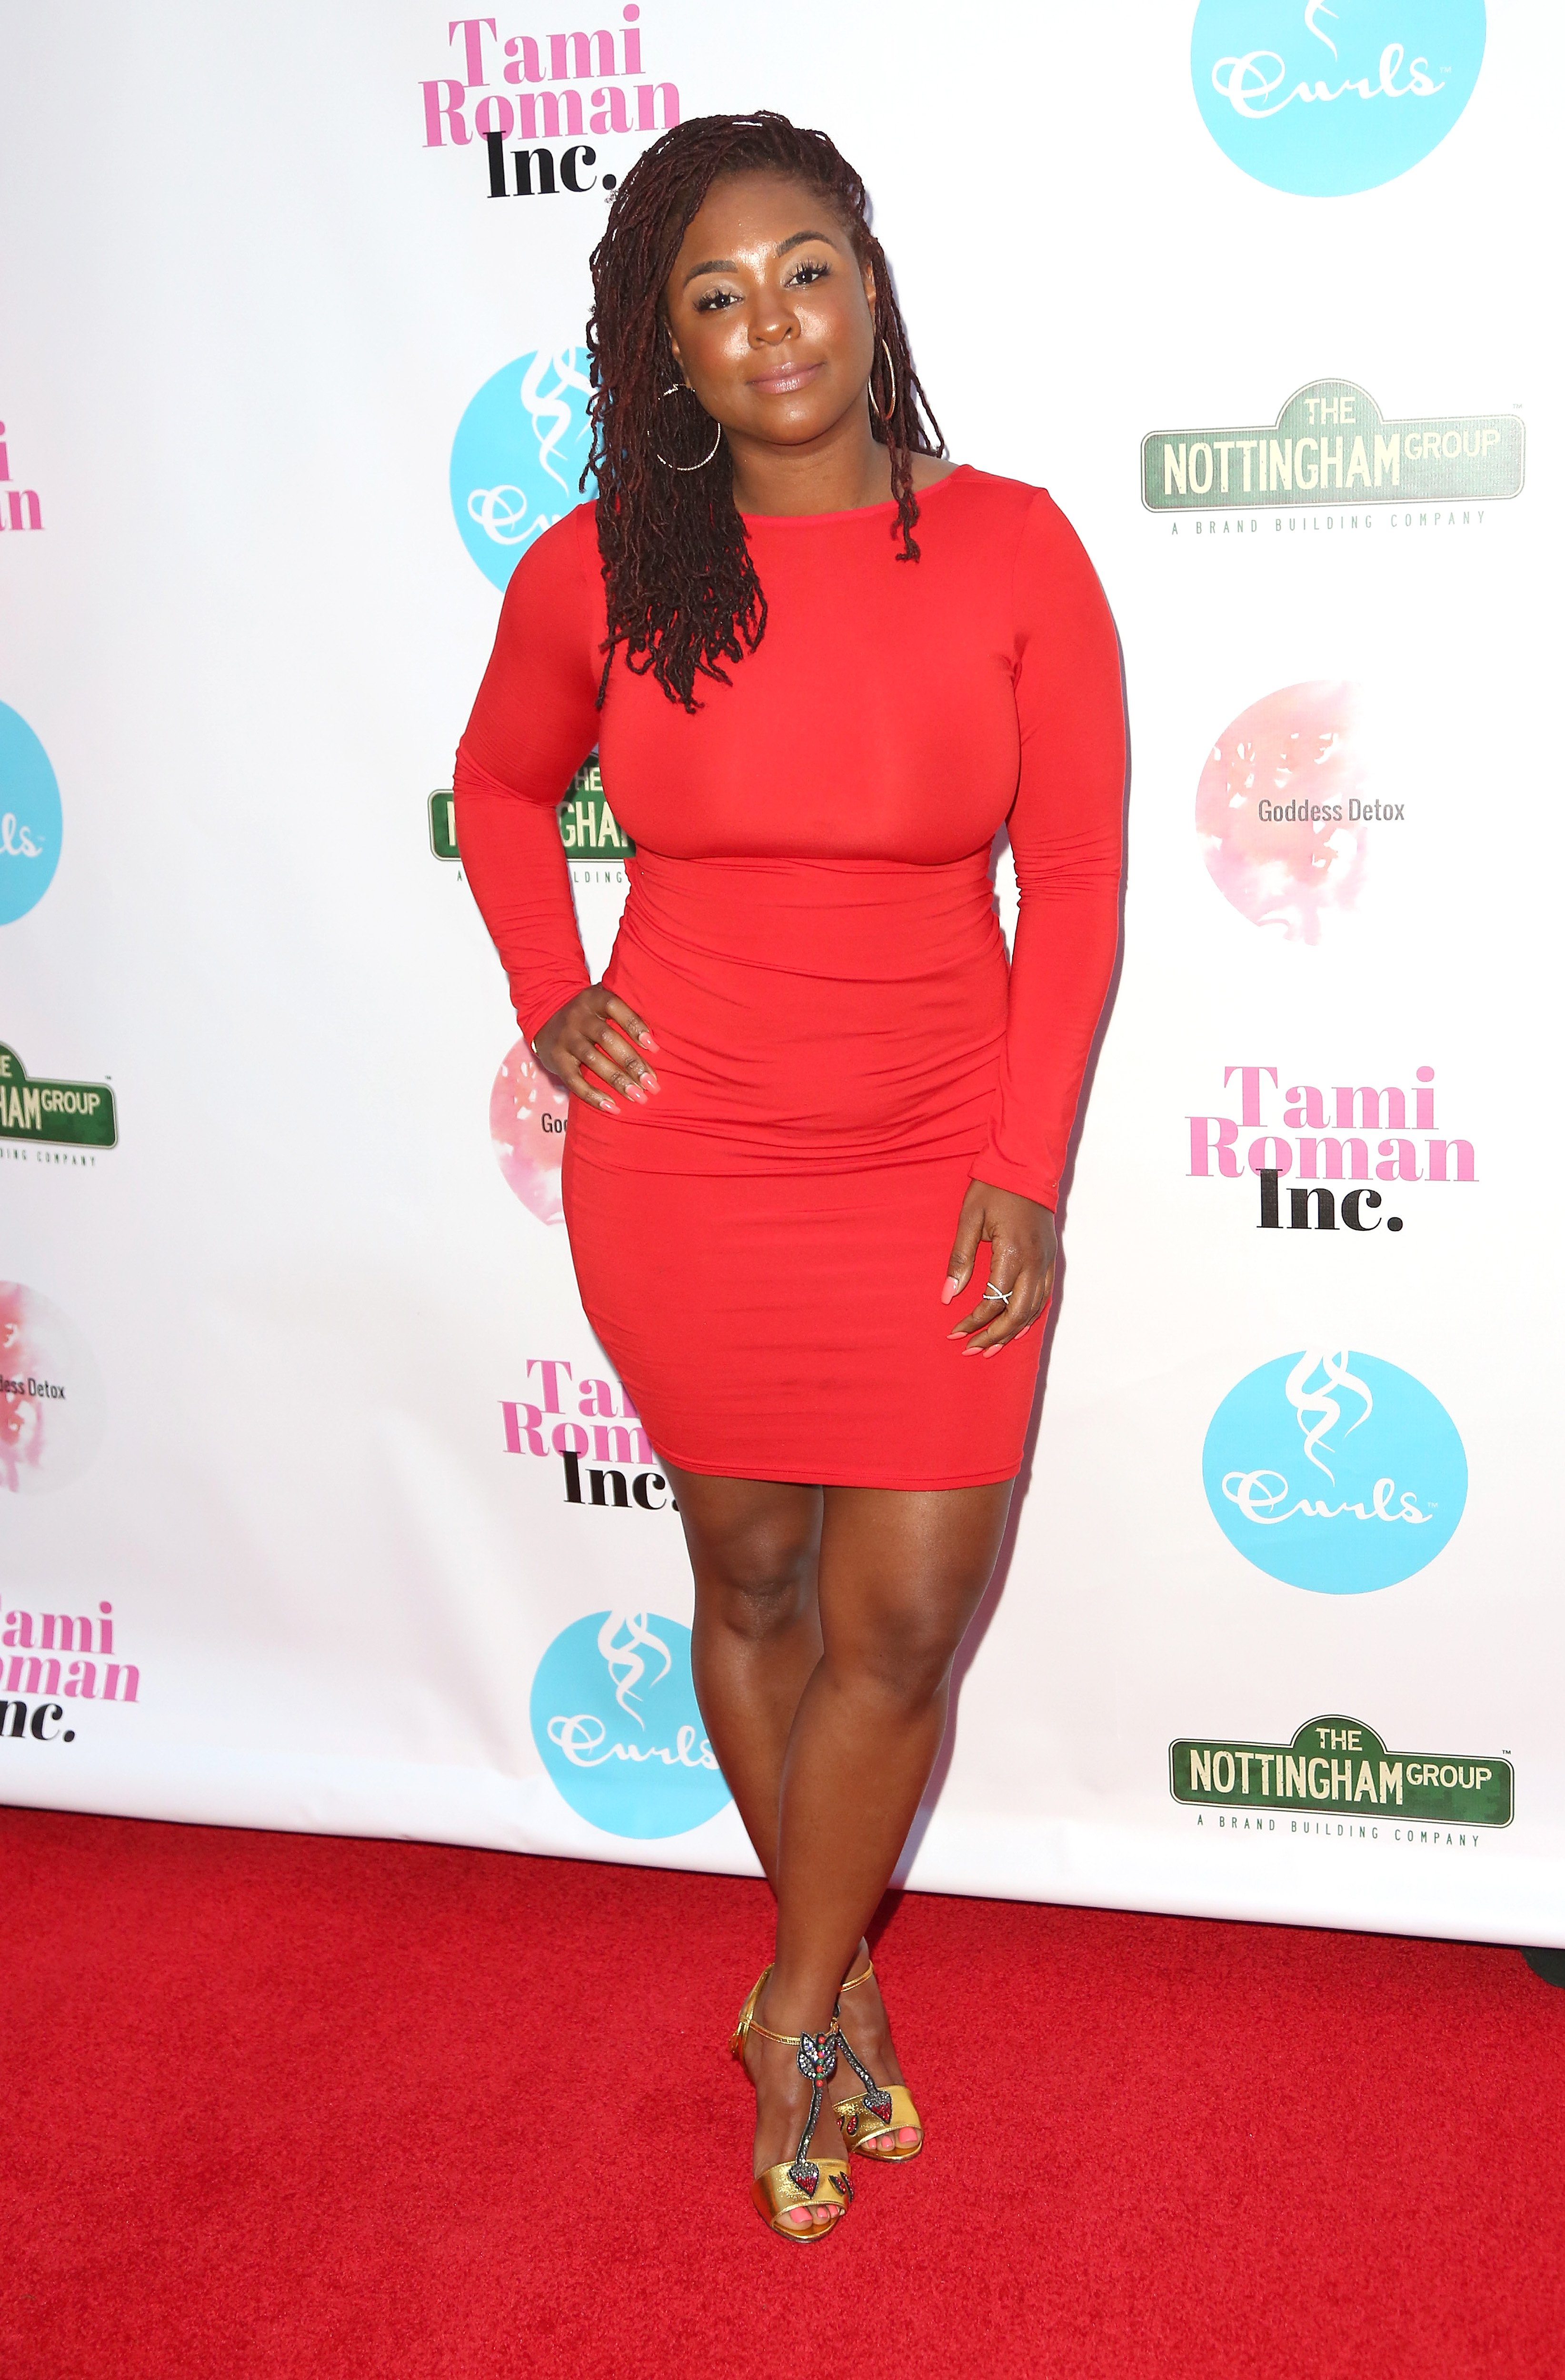 Torrei Hart at the Women of Influence Dinner in California in 2017 | Photo: Getty Images